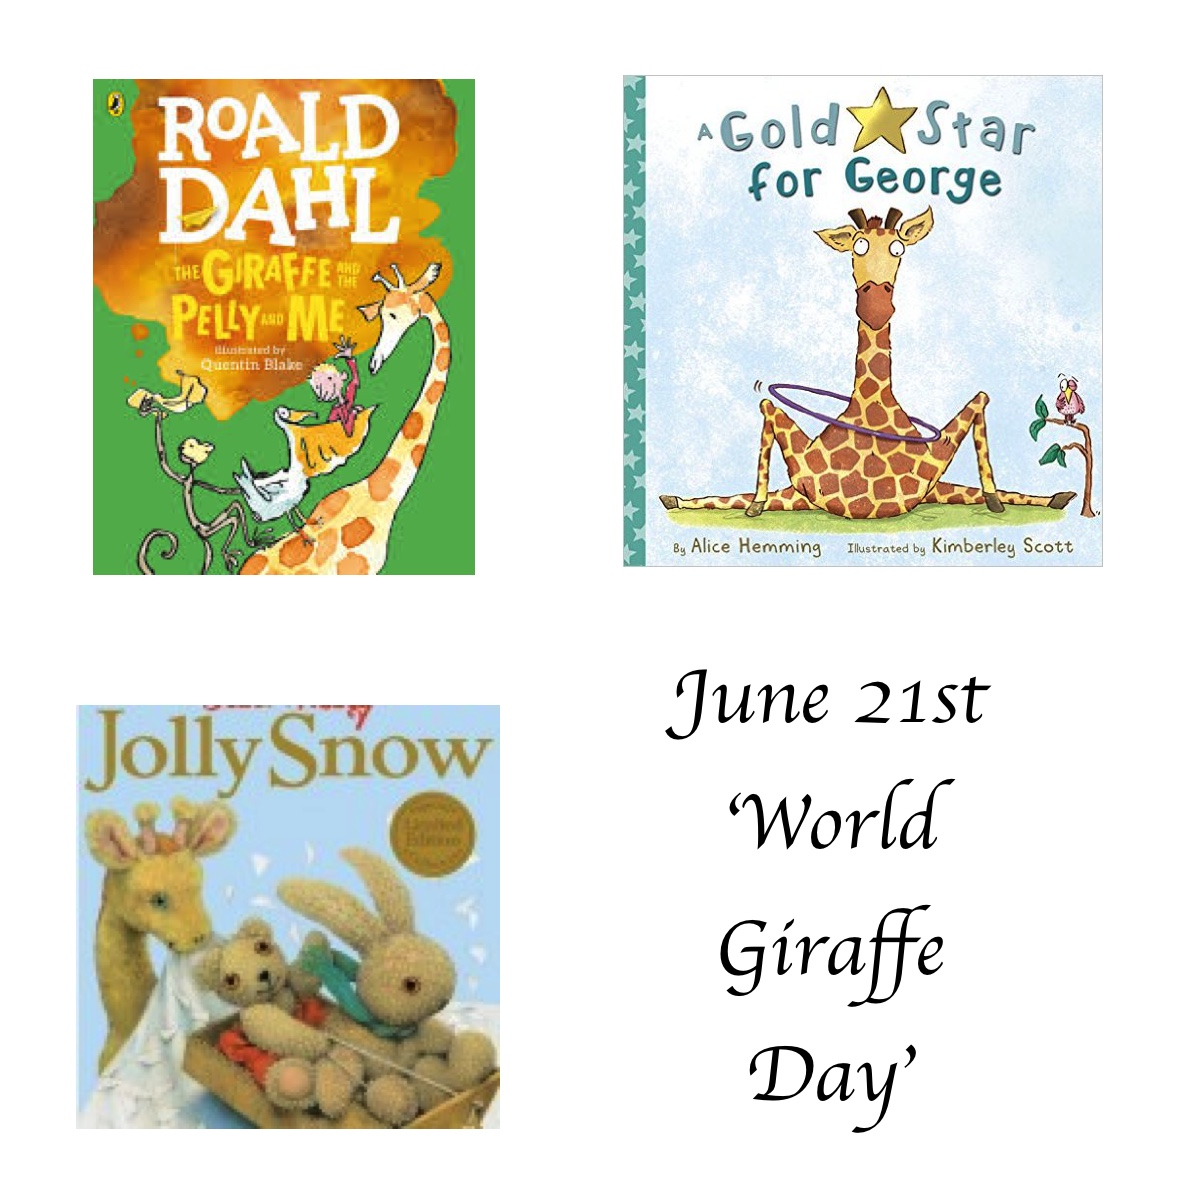 World Giraffe Day - Story Snug